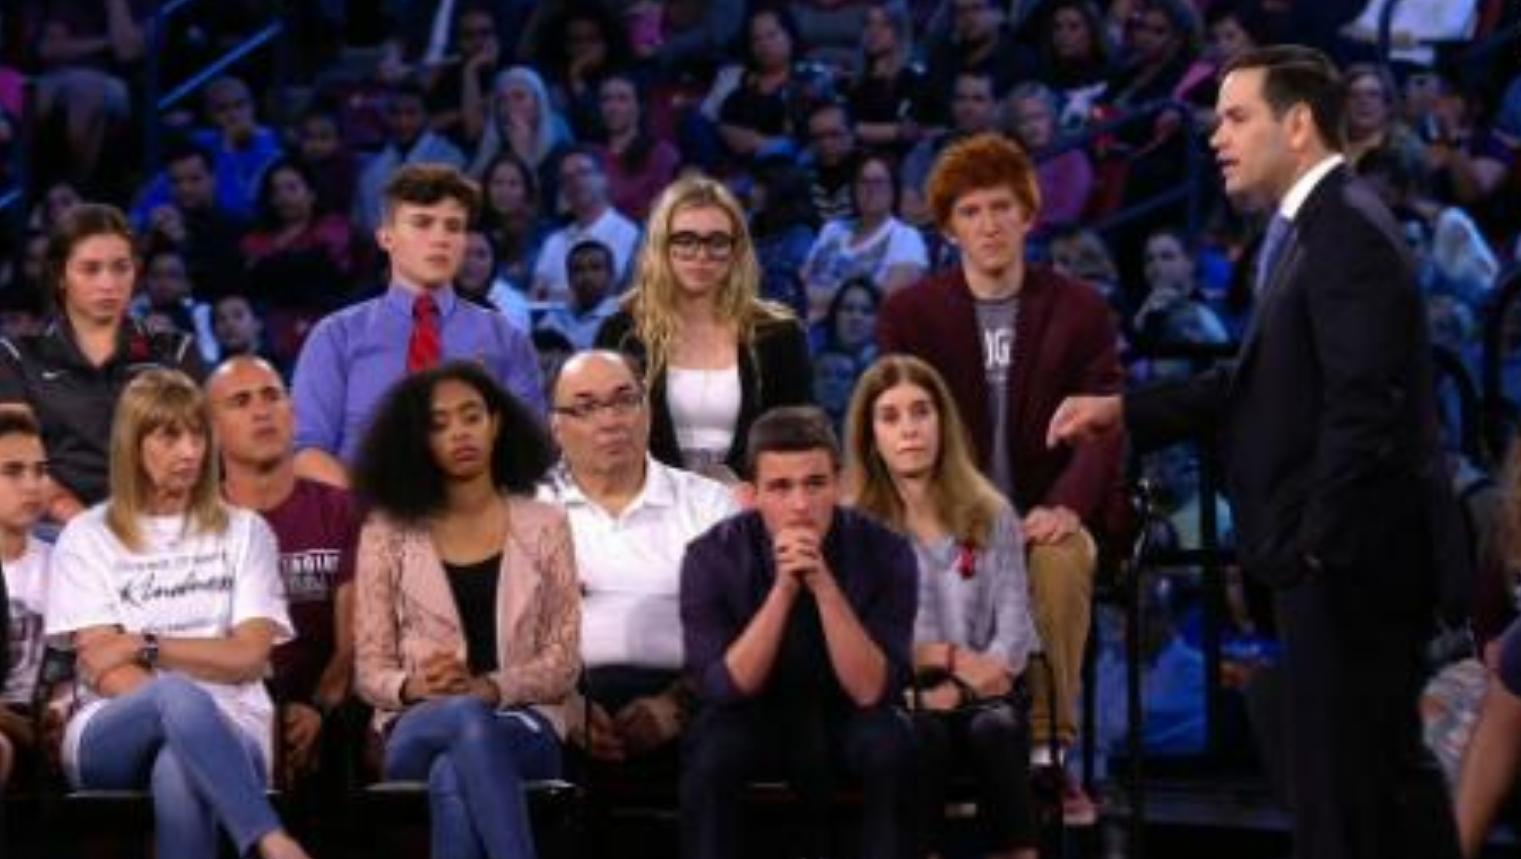 CNN town hall on gun policy in America